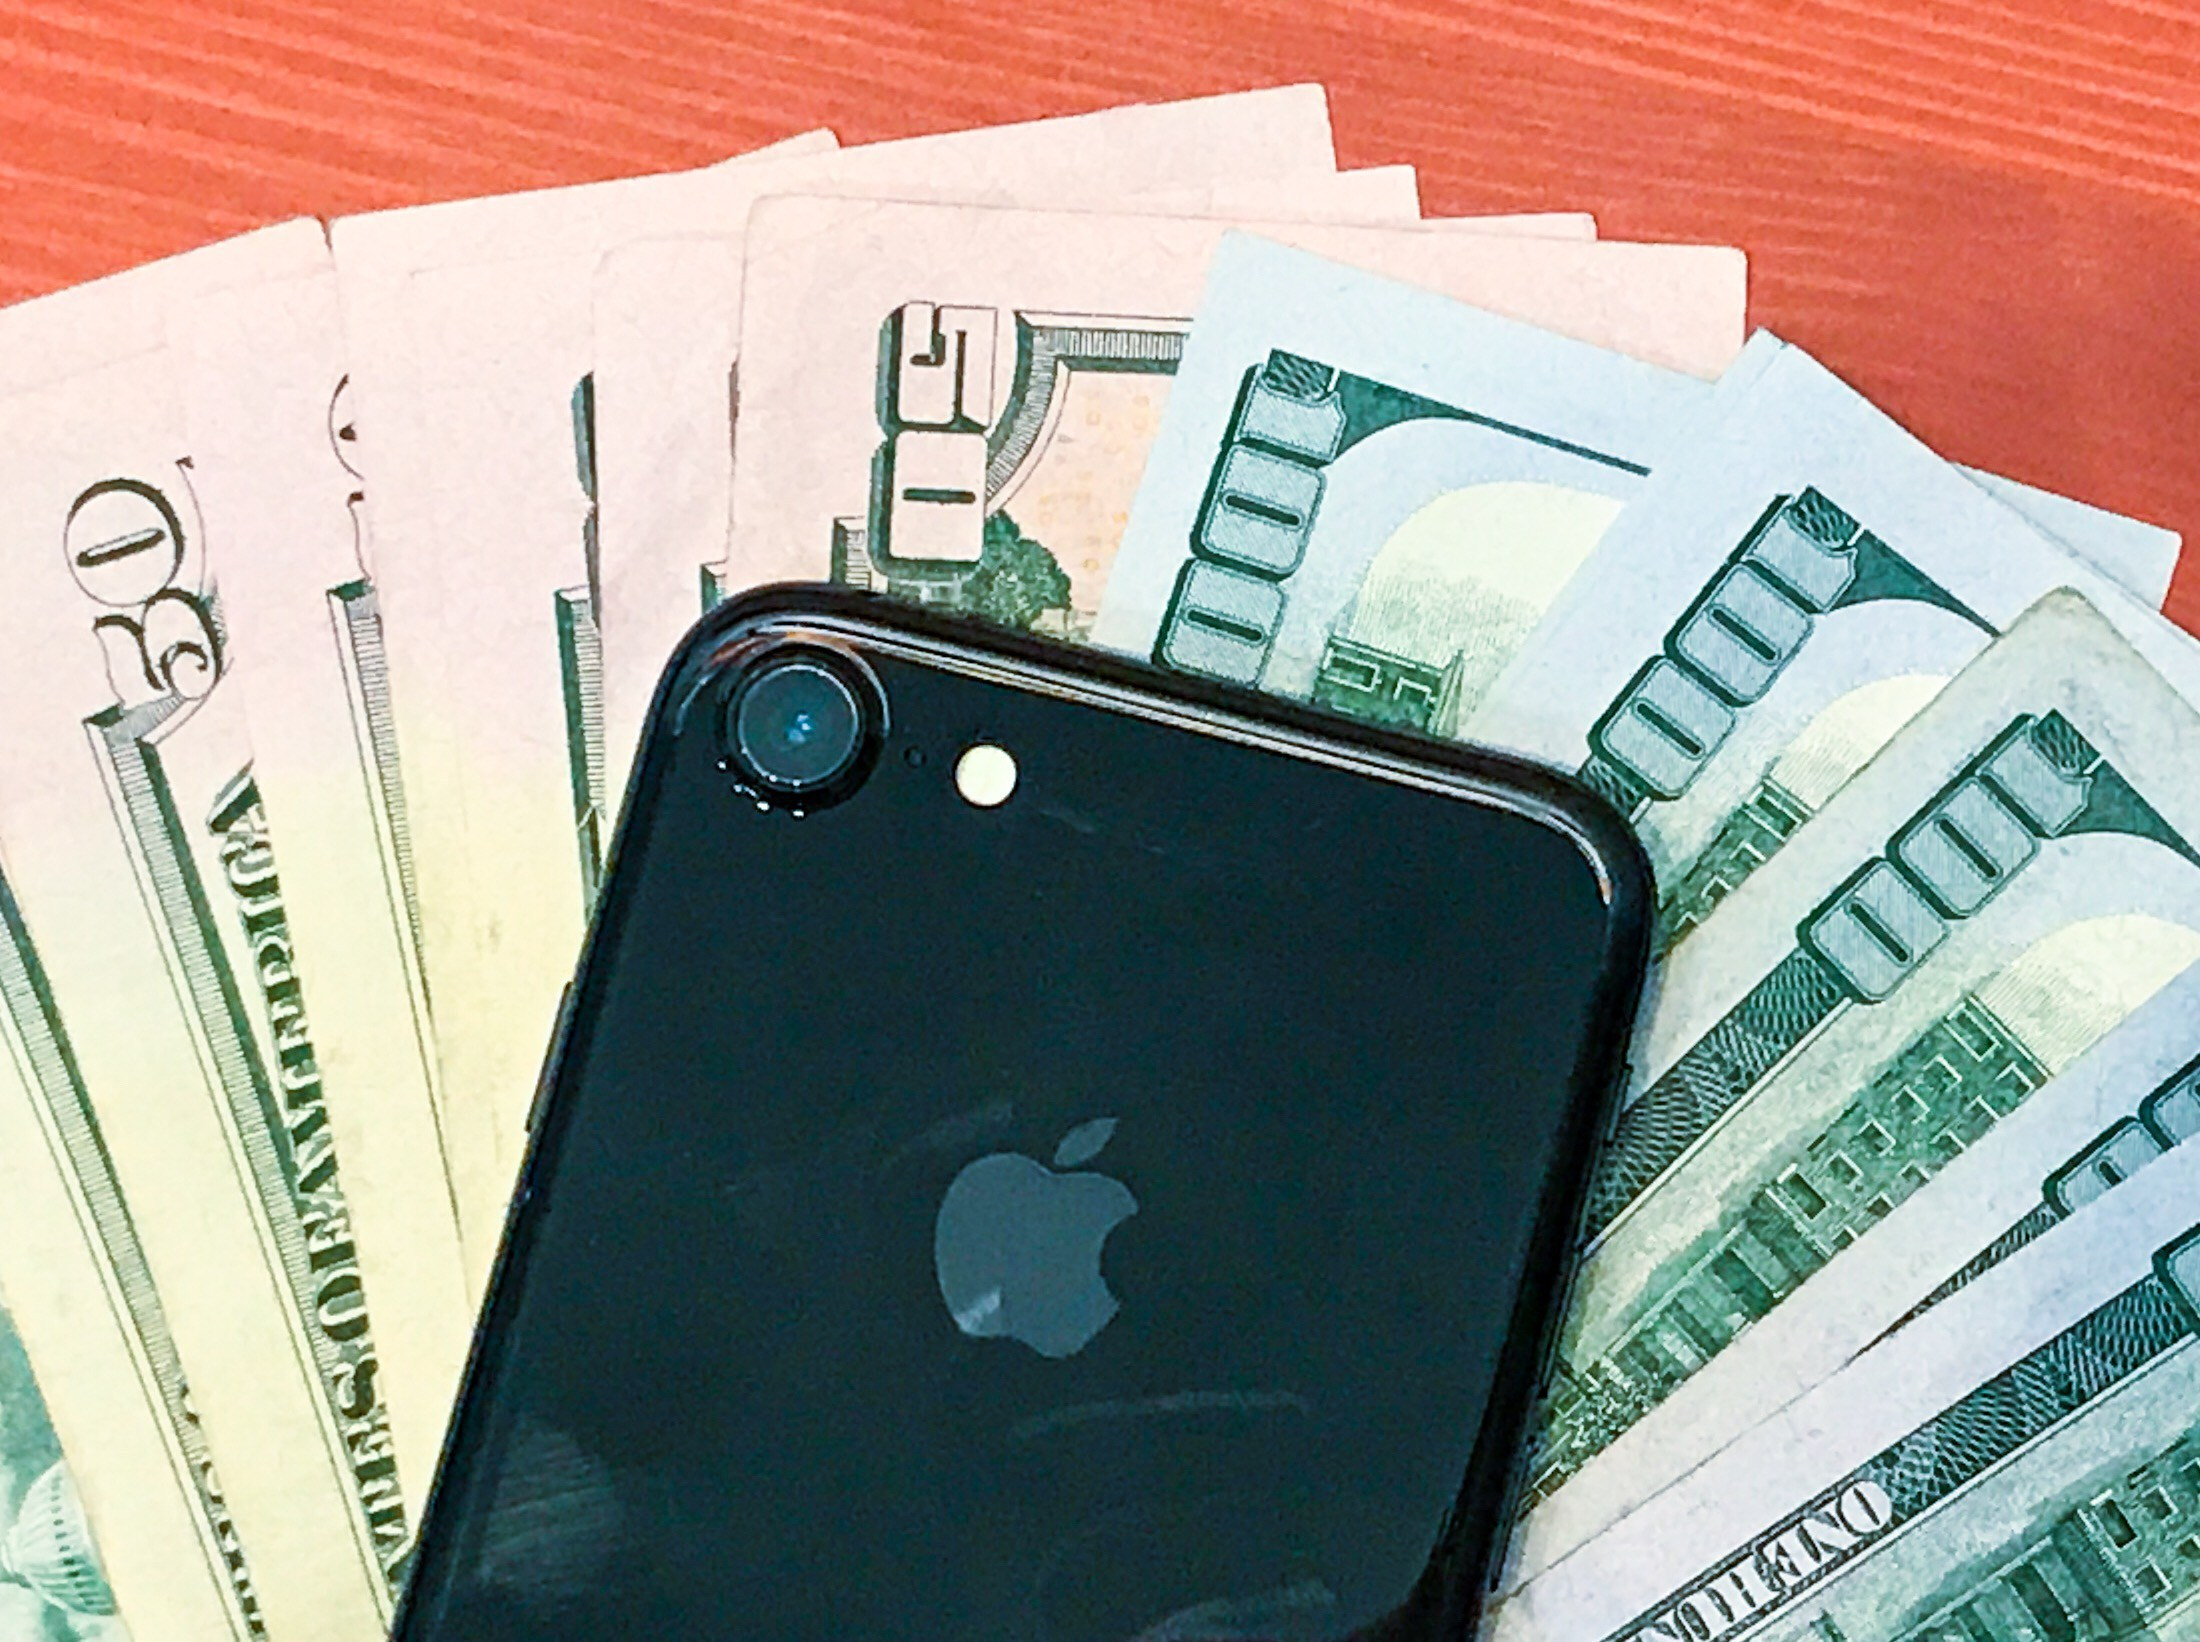 Lock in your iPhone trade in price to sell your iPhone for top dollar ahead of the iPhone 8 release date.